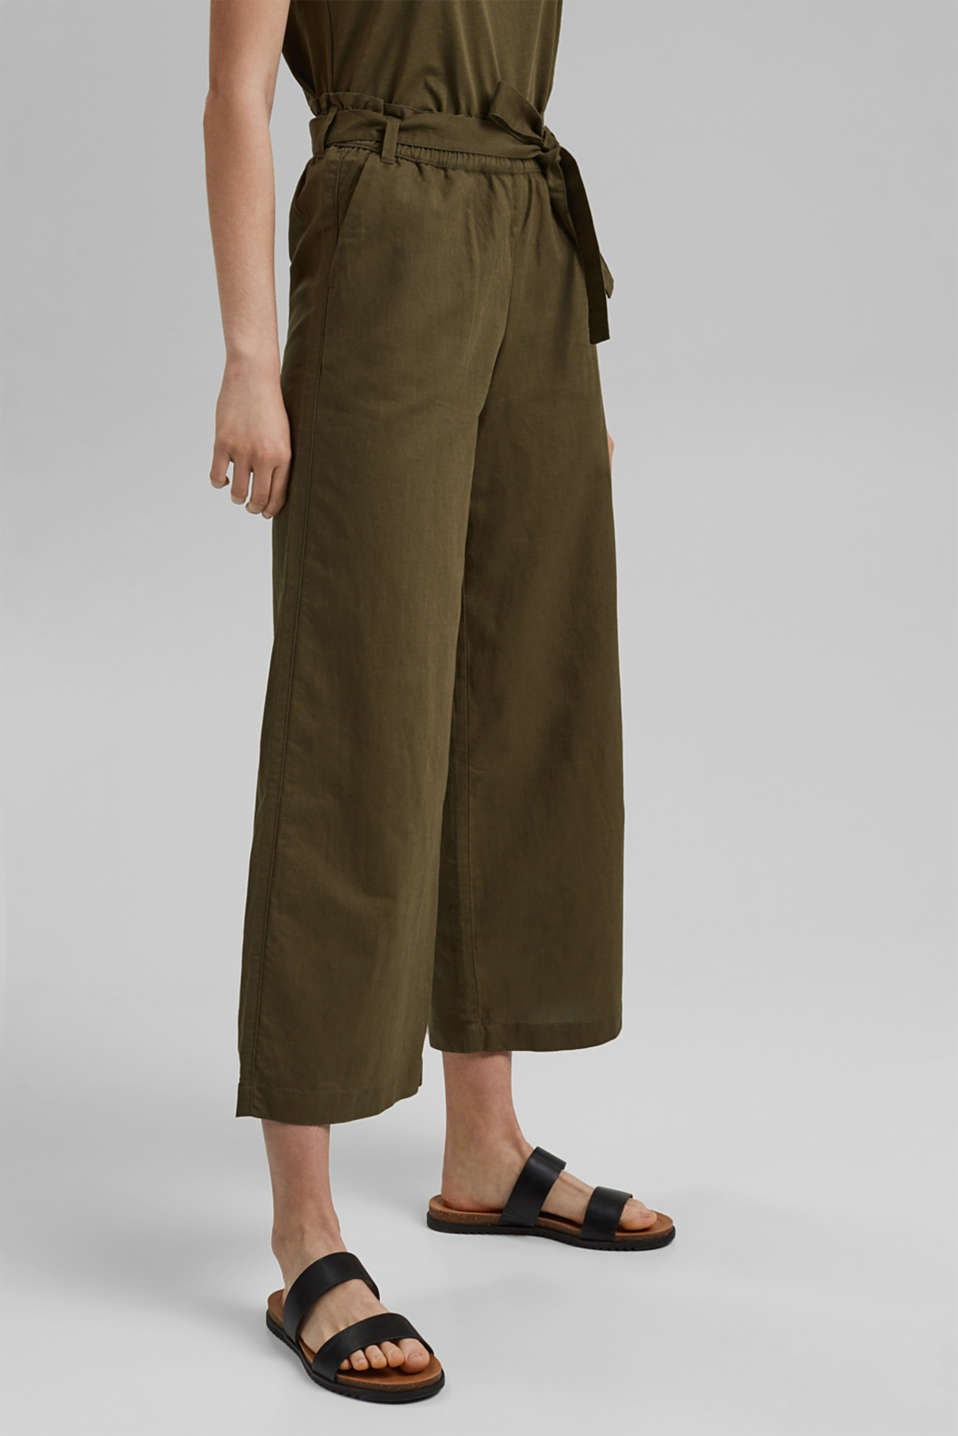 edc - Made of linen/organic cotton: Culottes with a belt